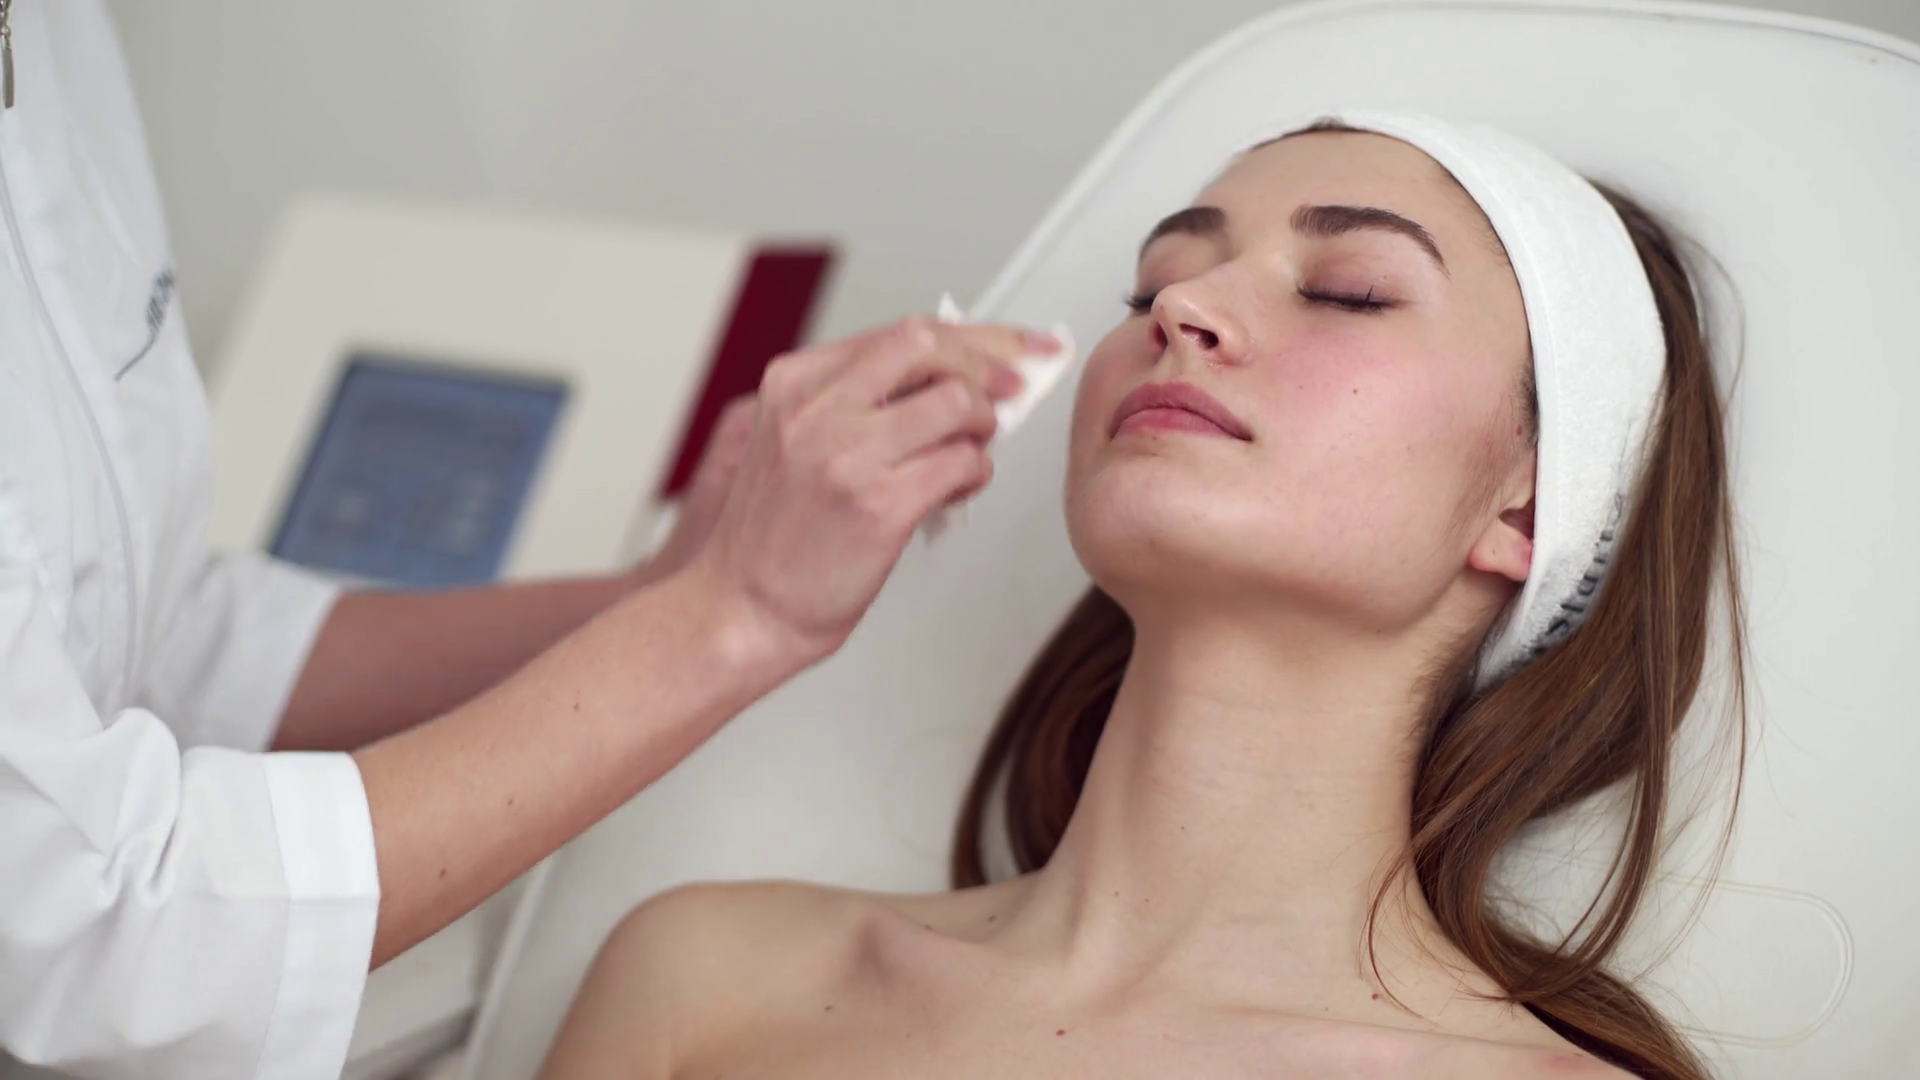 Beautician Doctor Removing Wiping Makeup From Patient Face Young Woman In Headband Lying On A Medical Chair Before Cosmetology Procedure In Beauty Salon Or Clinic Skin Care And Rejuvenation Concept Stock Video